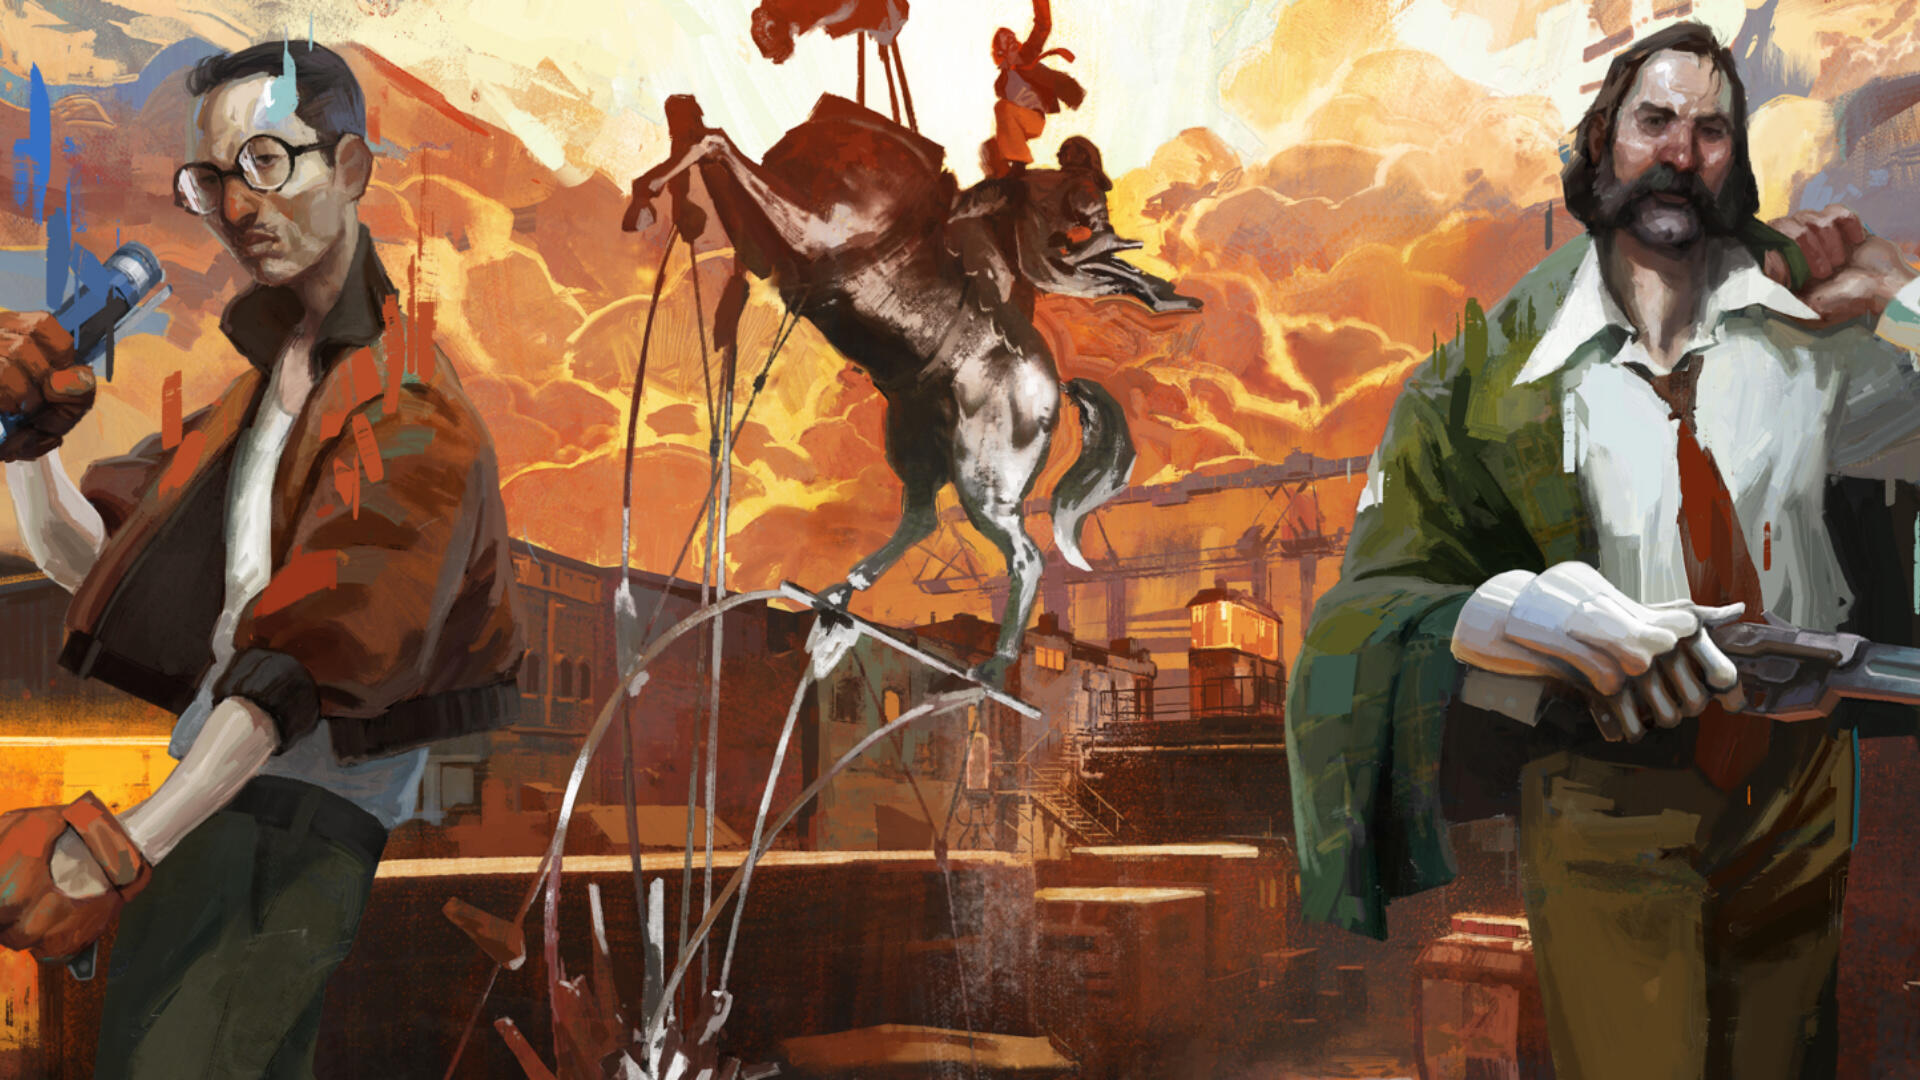 Disco Elysium Review: The Voices in Your Head Are Real, and They'll Get You in Trouble